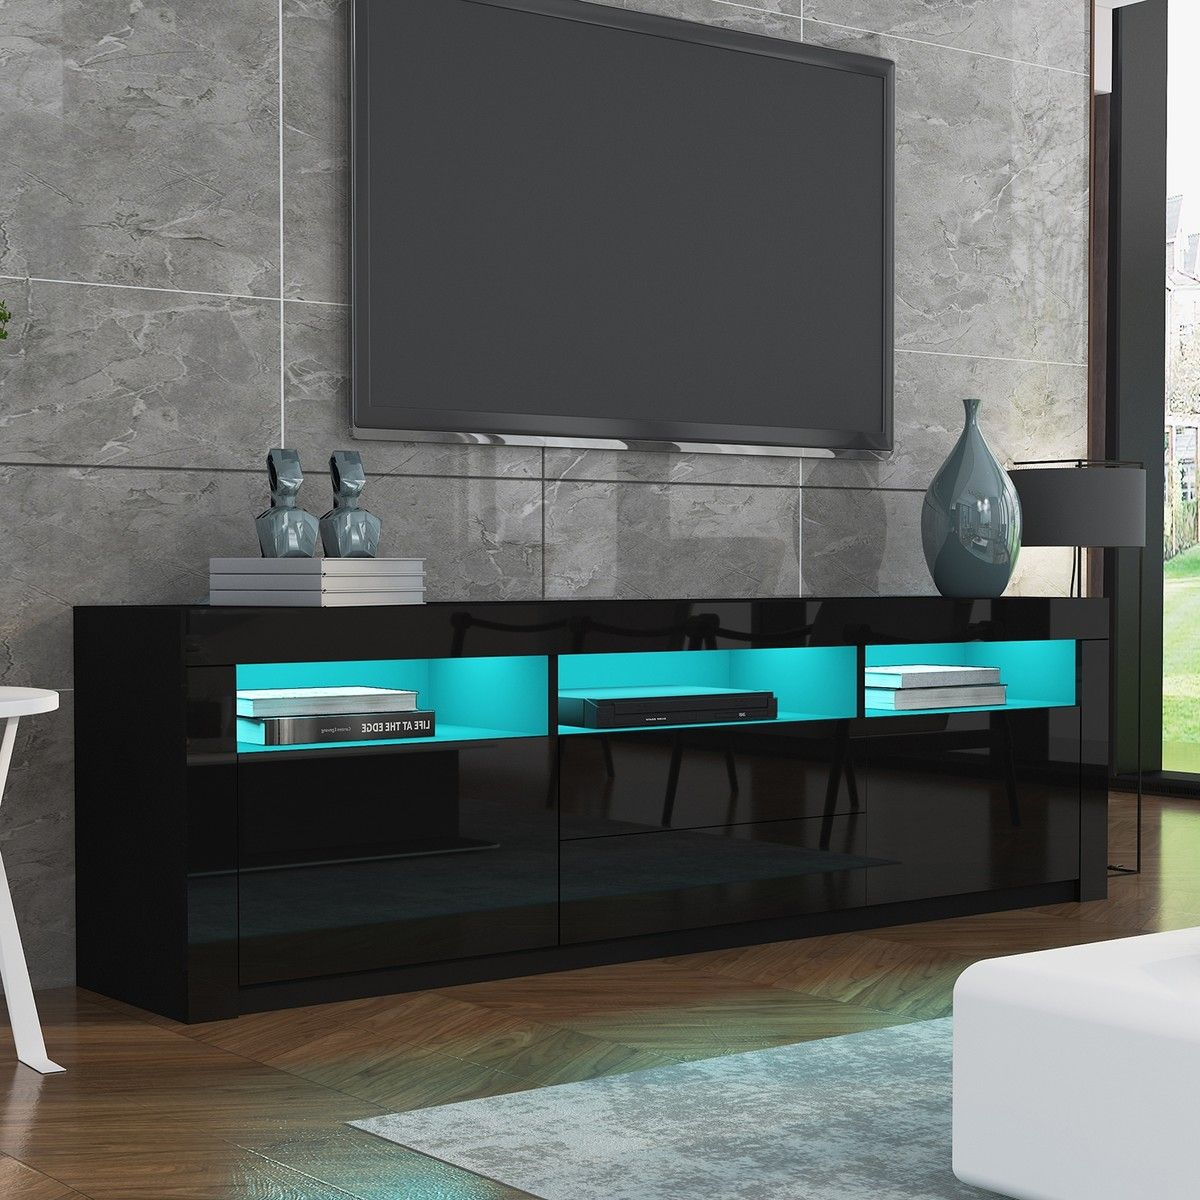 Tv Sideboard Modern 200cm Modern Wooden Tv Unit Side Cabinet Rgb Led High ...